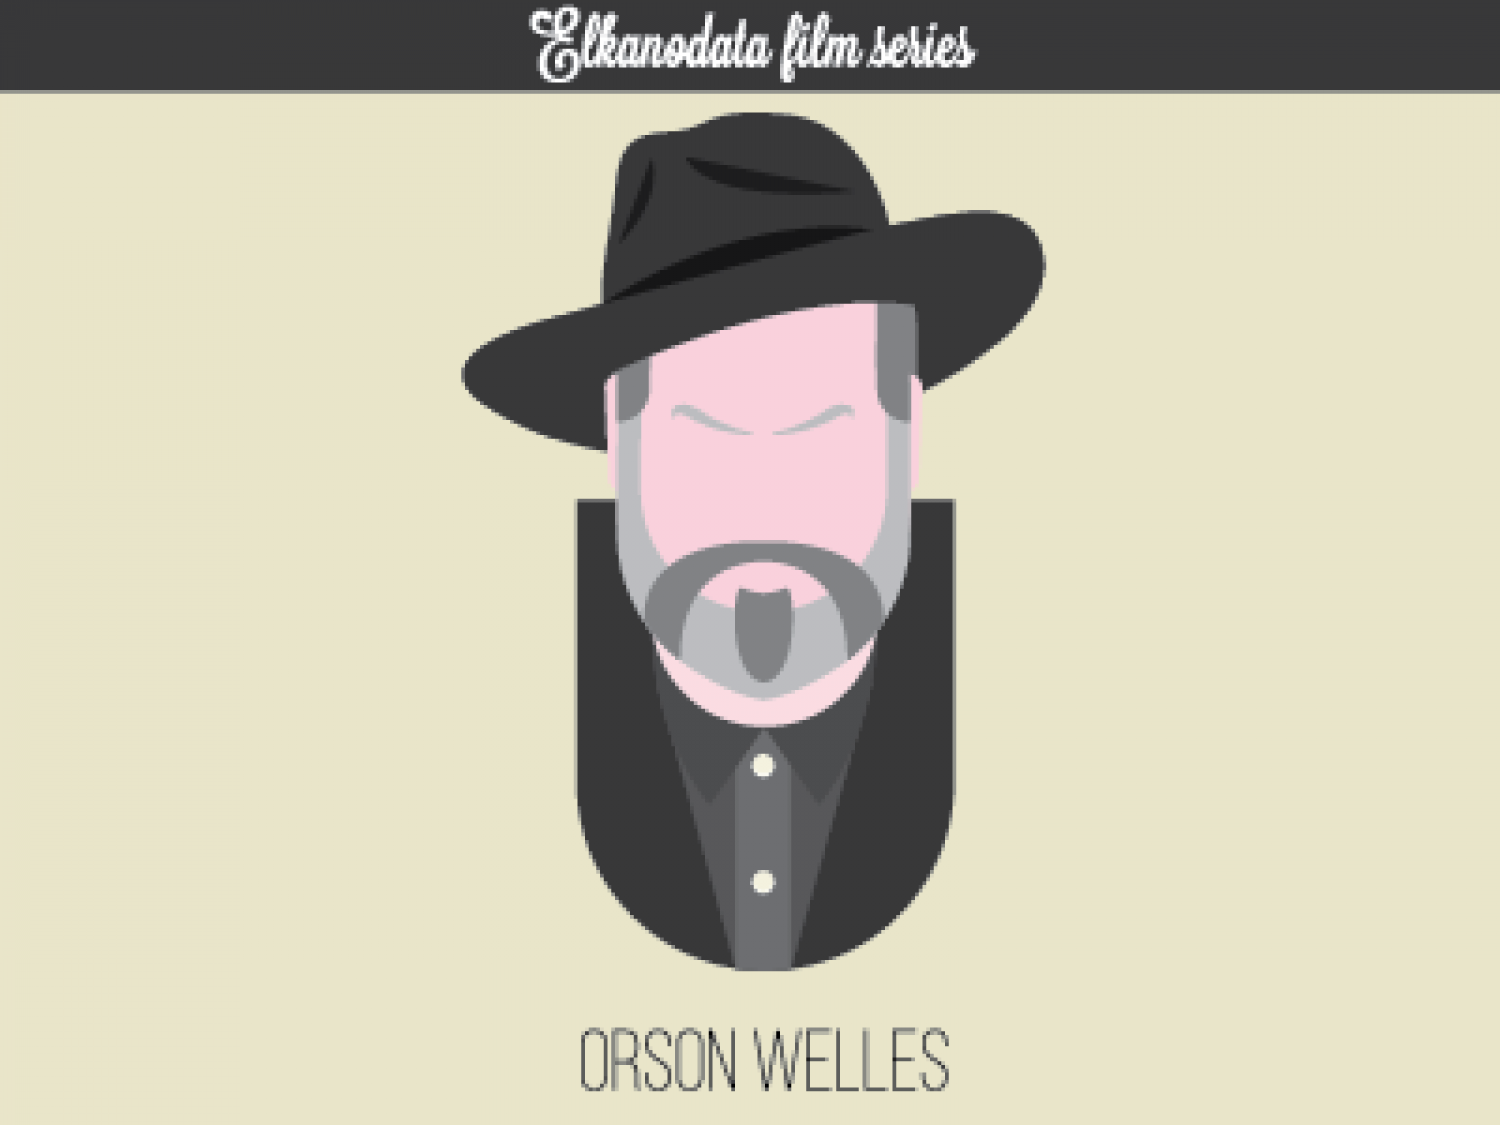 Quintessential Quotes From Cult Film Directors: Orson Welles Infographic